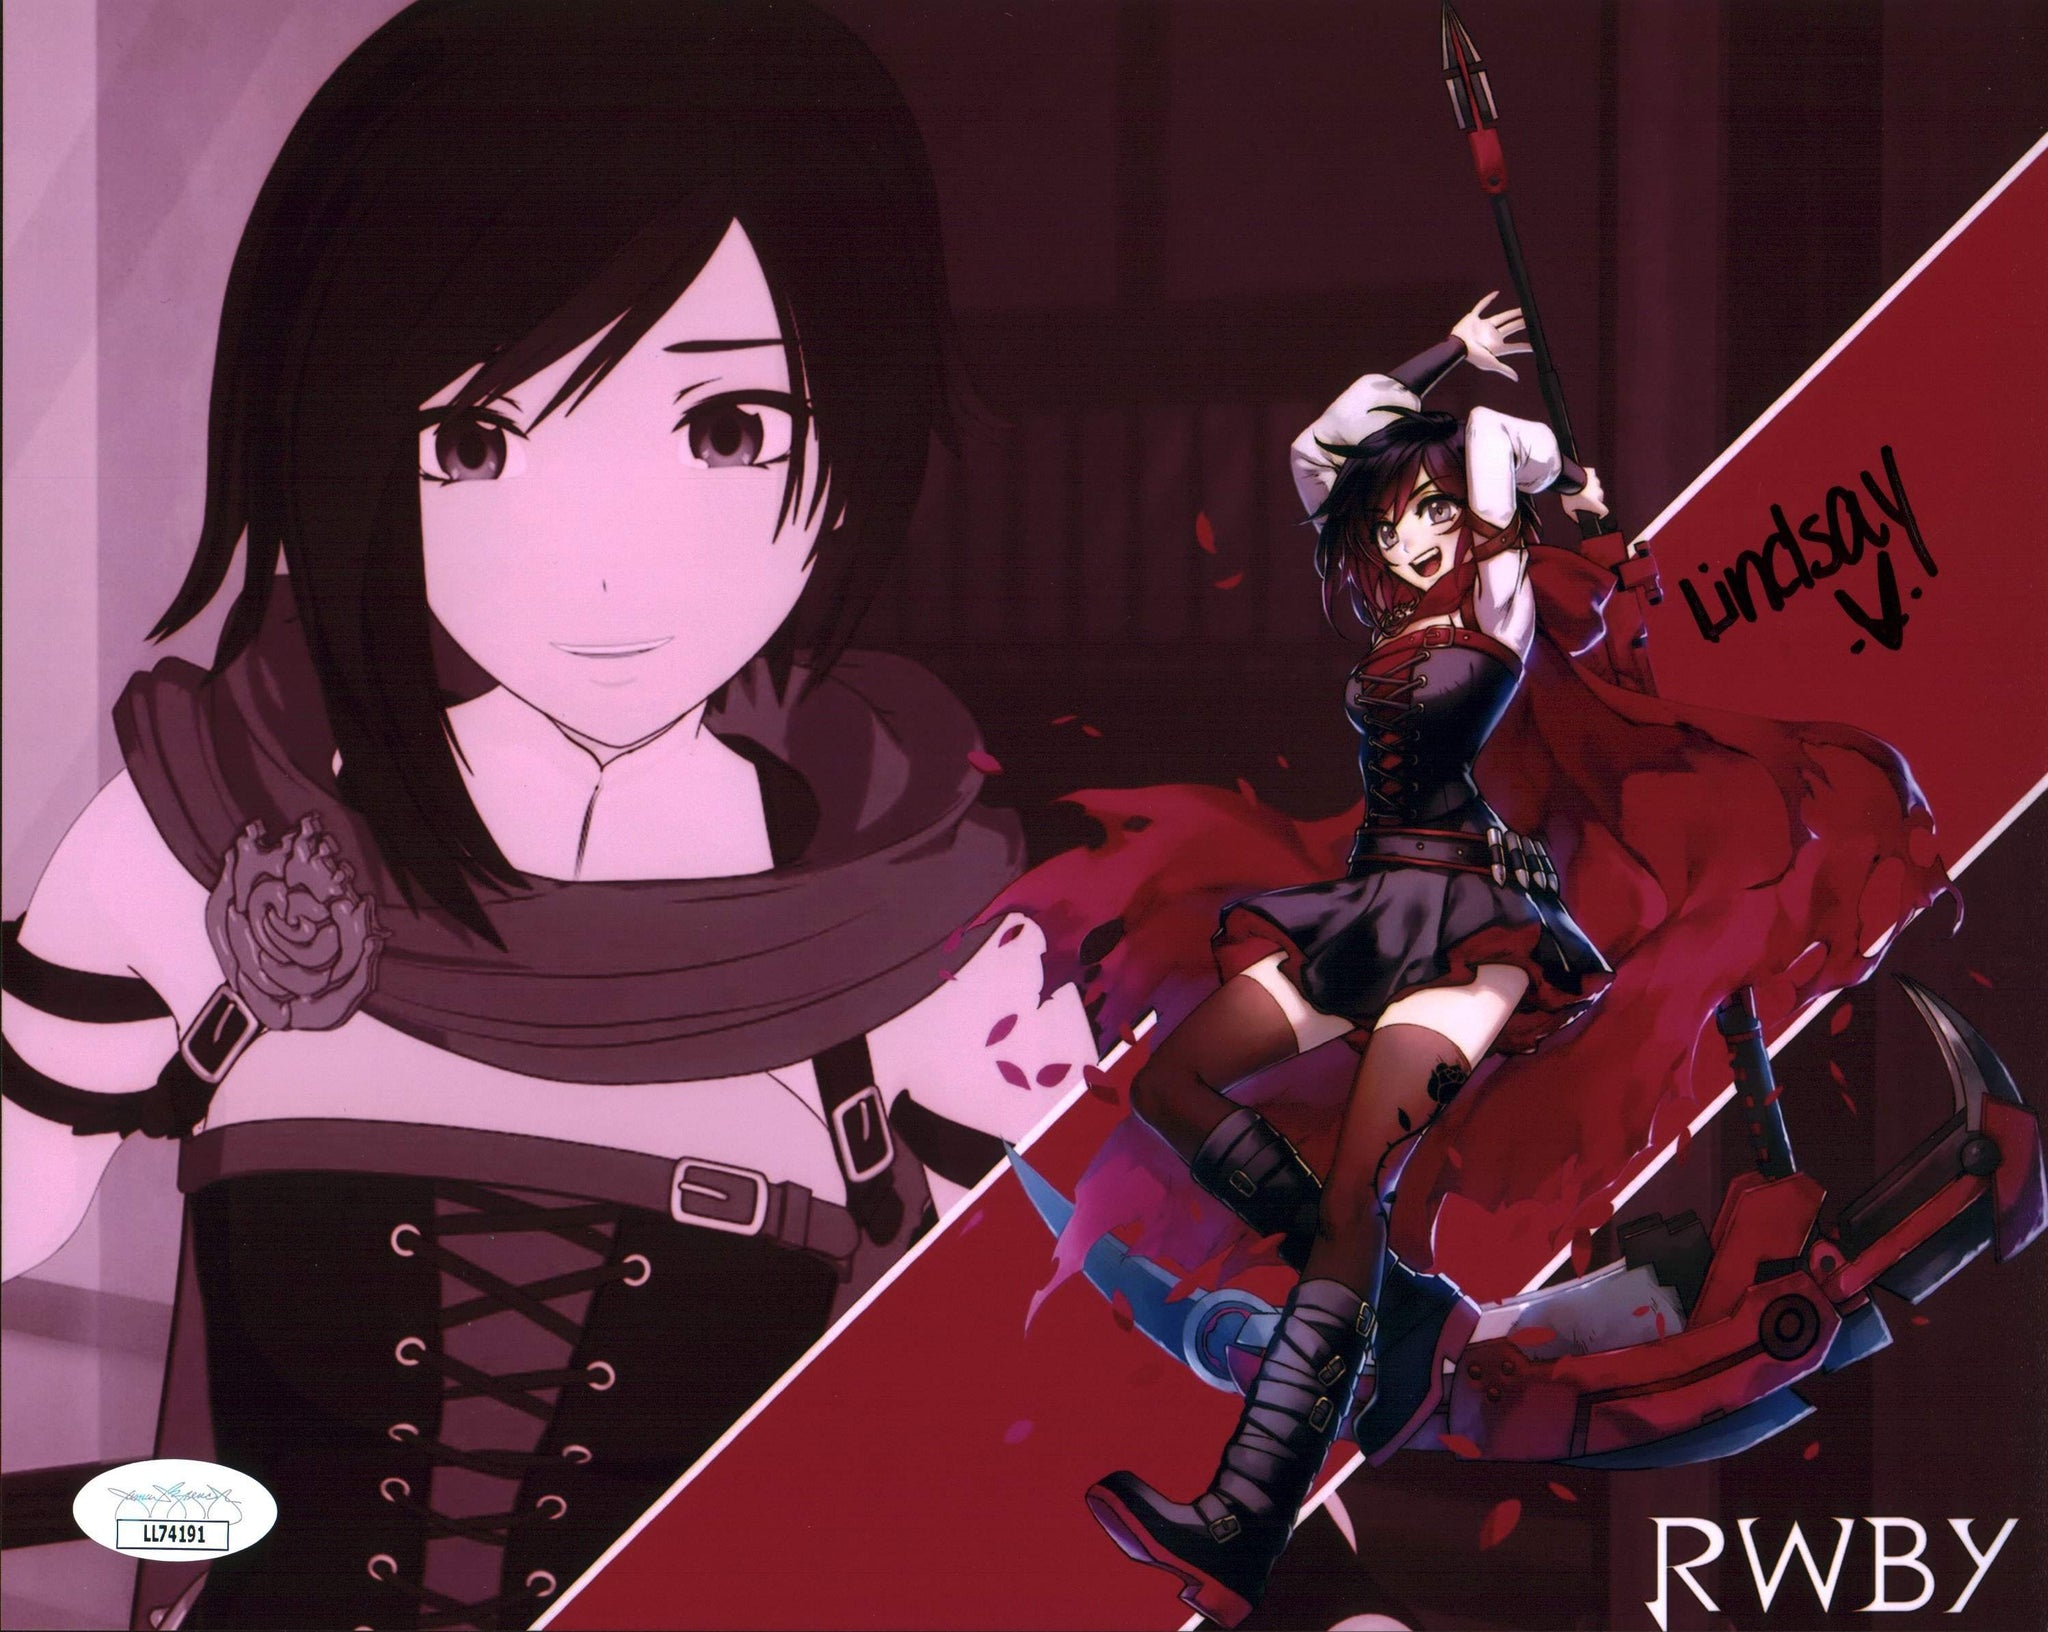 Lindsay Jones RWBY 8x10 Photo Signed Autograph JSA Certified COA Auto GalaxyCon